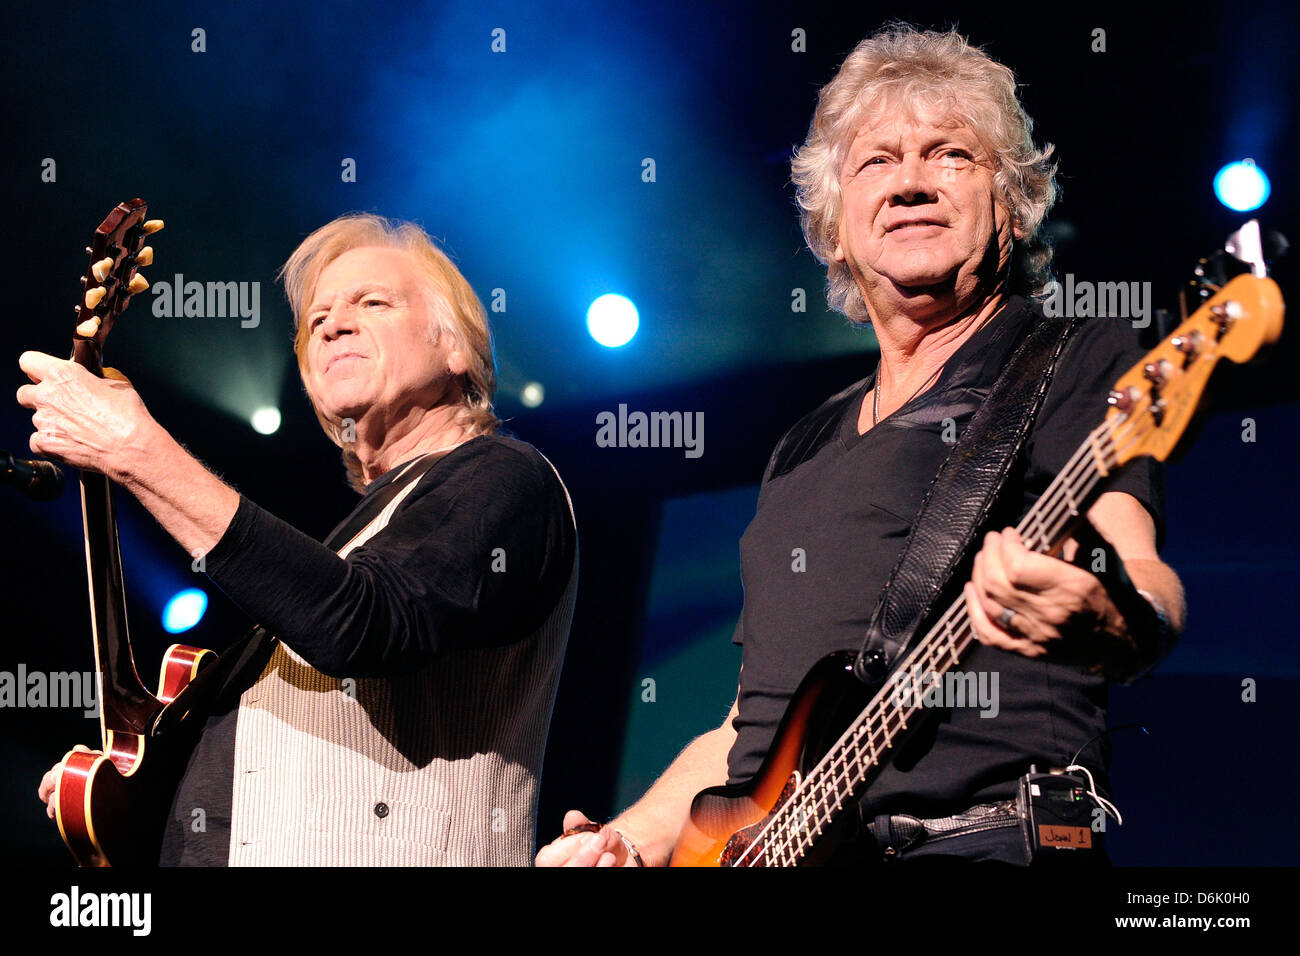 Justin Hayward And John Lodge The Moody Blues Perform On Stage At The Stock Photo Alamy